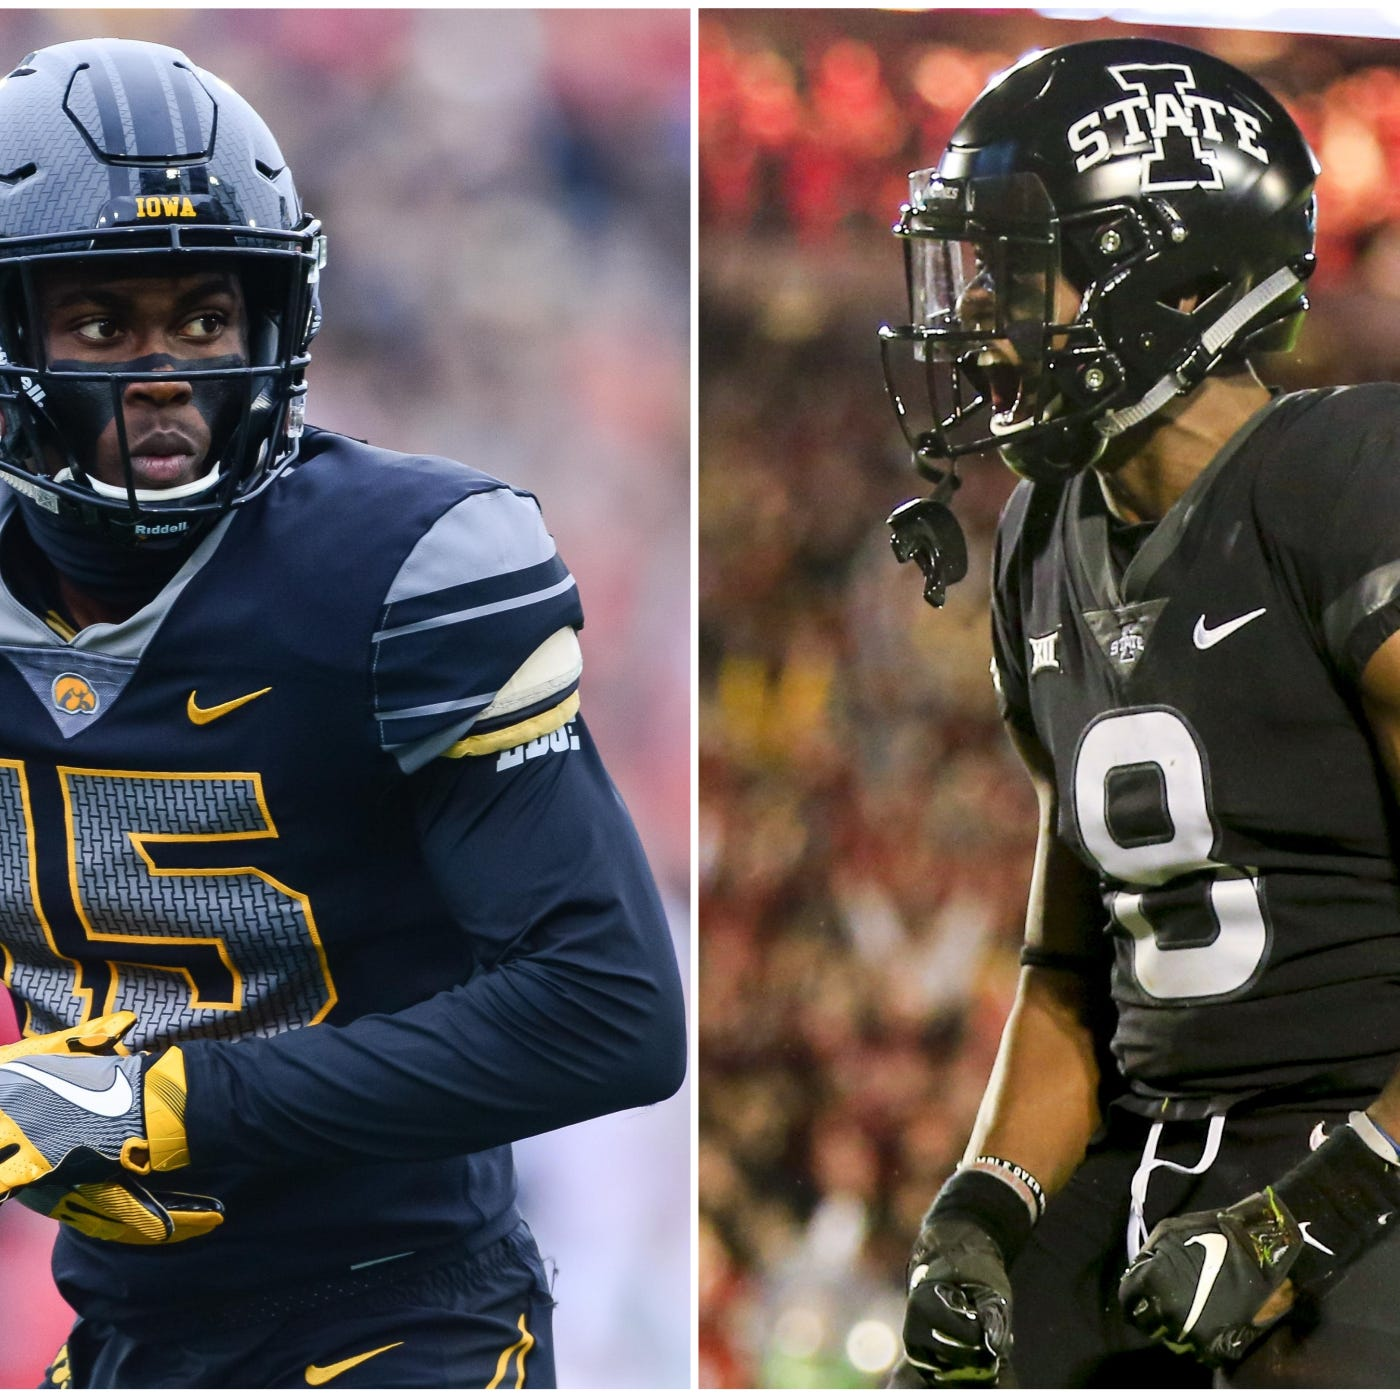 Can alternate uniforms help athletes hit new heights? Cyclones, Hawkeyes might say so.